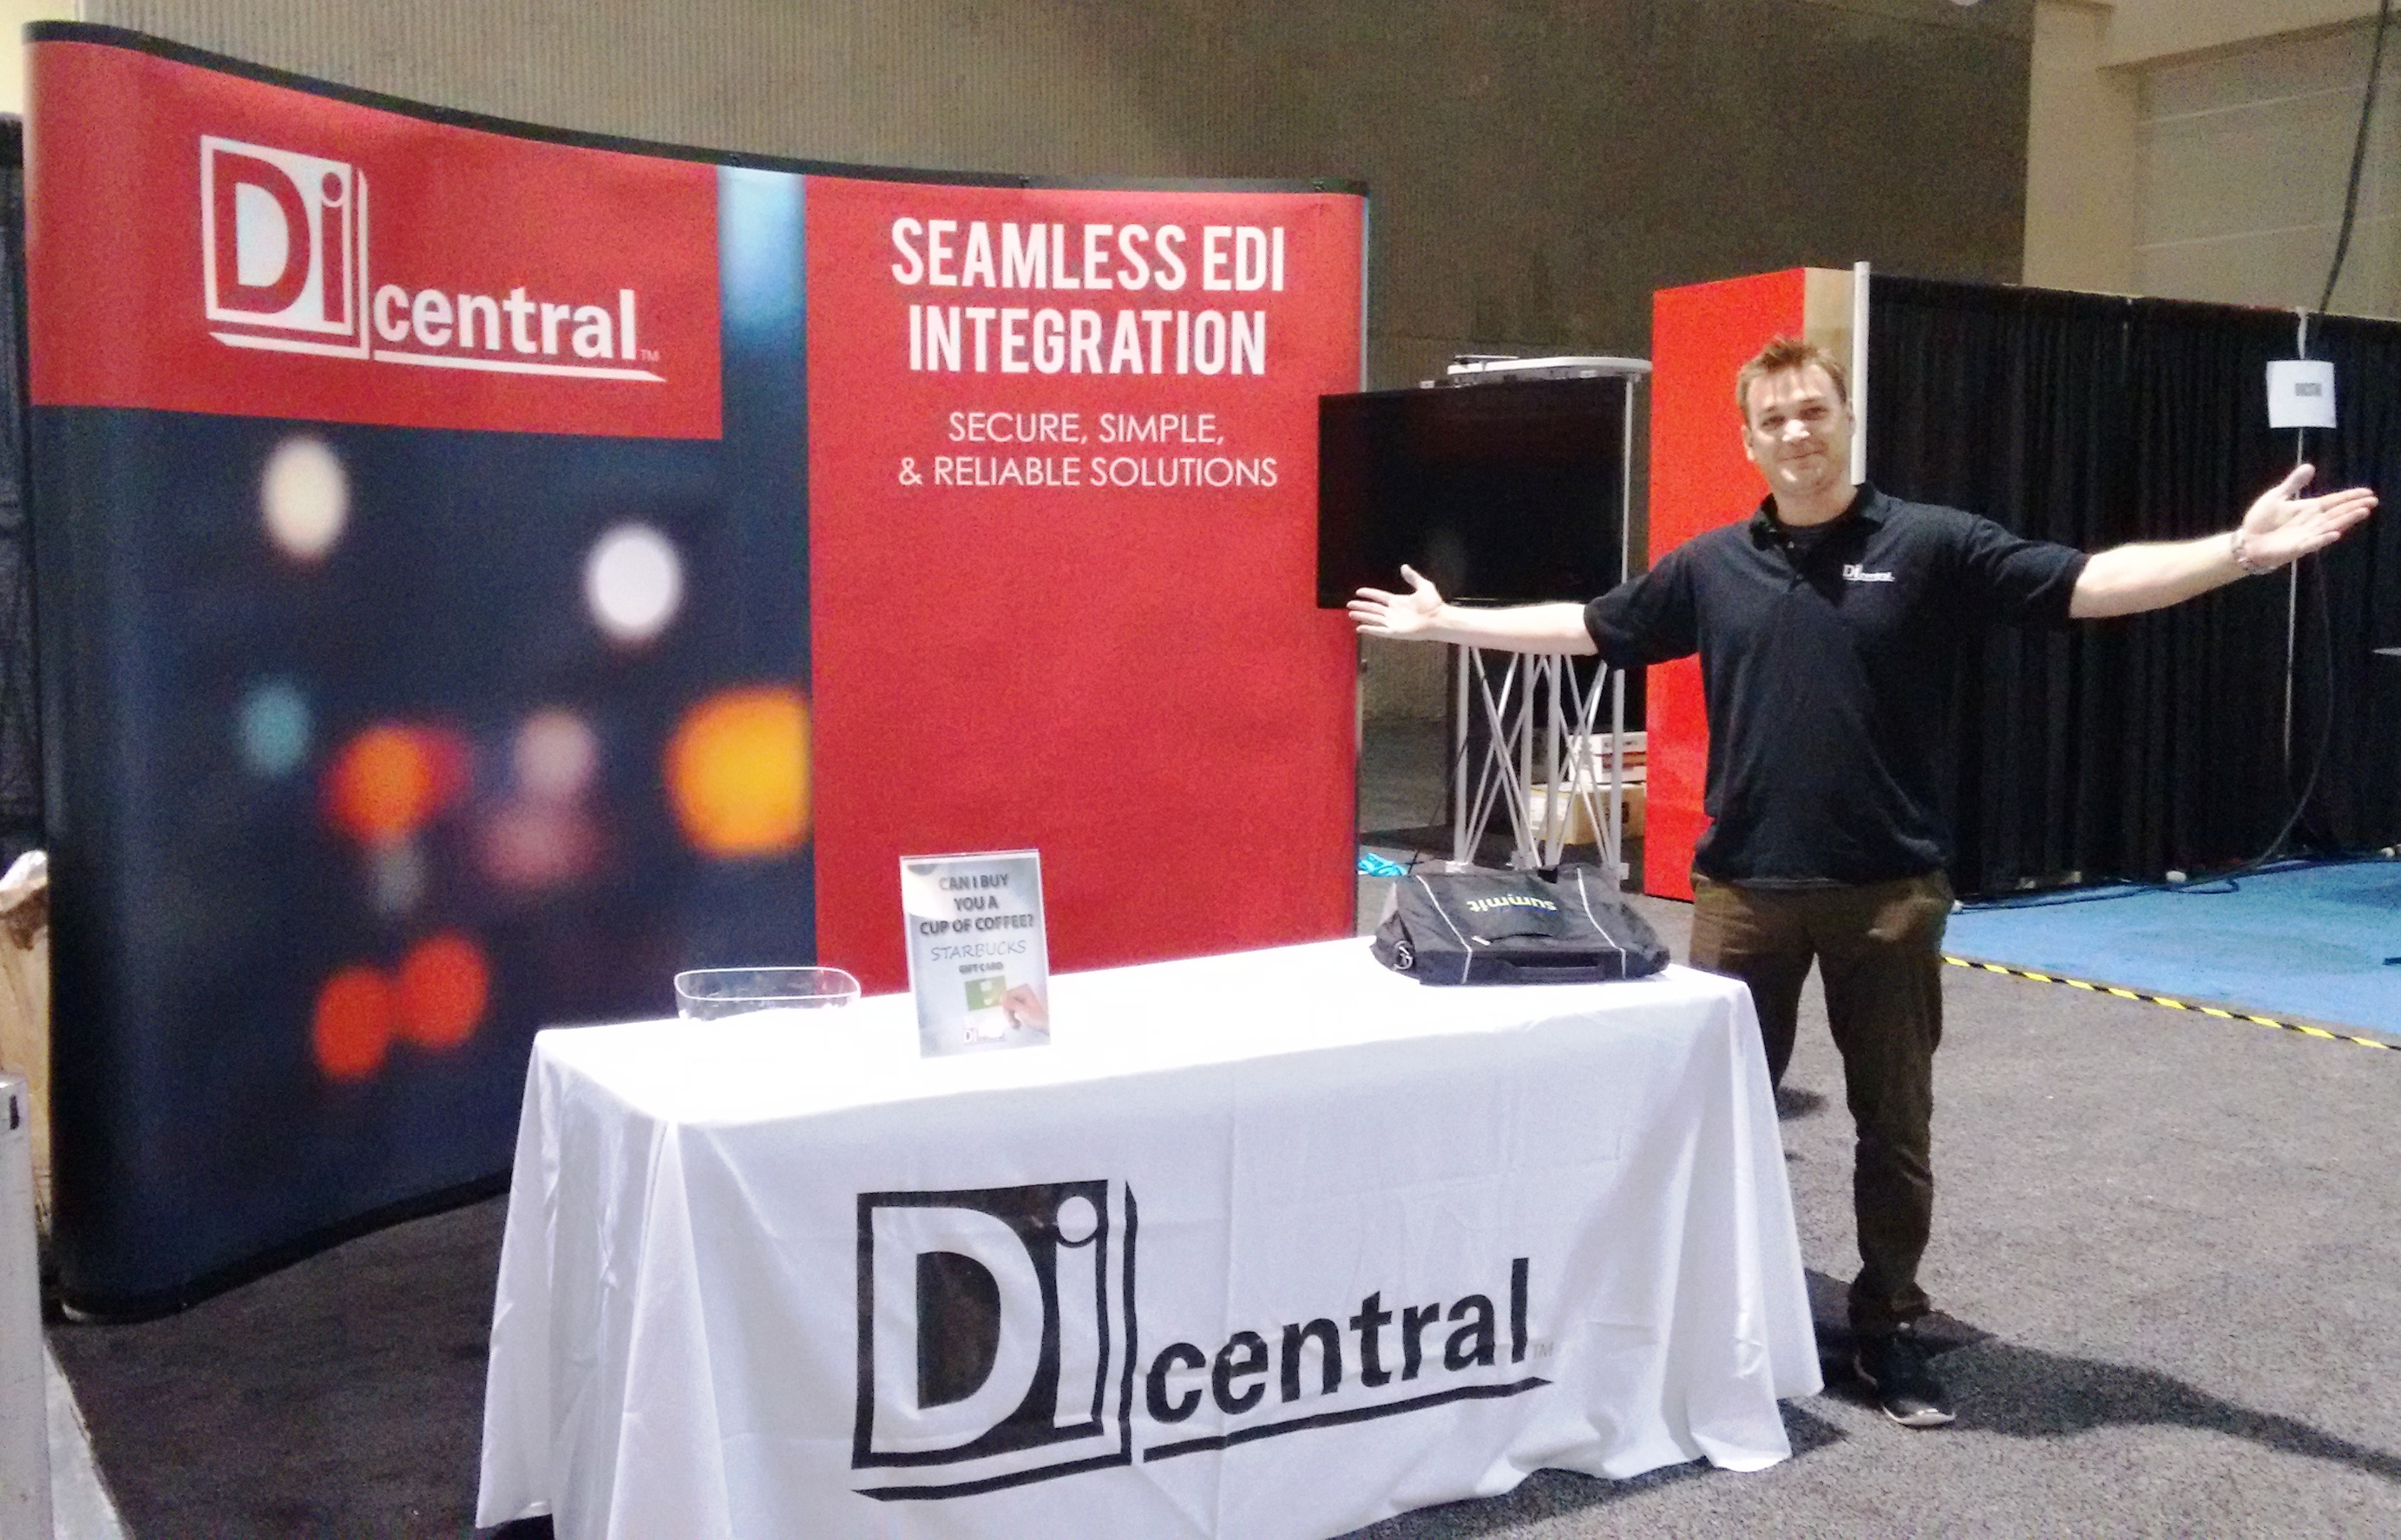 Booth #209 at Summit 2015— it's where the magic is happening